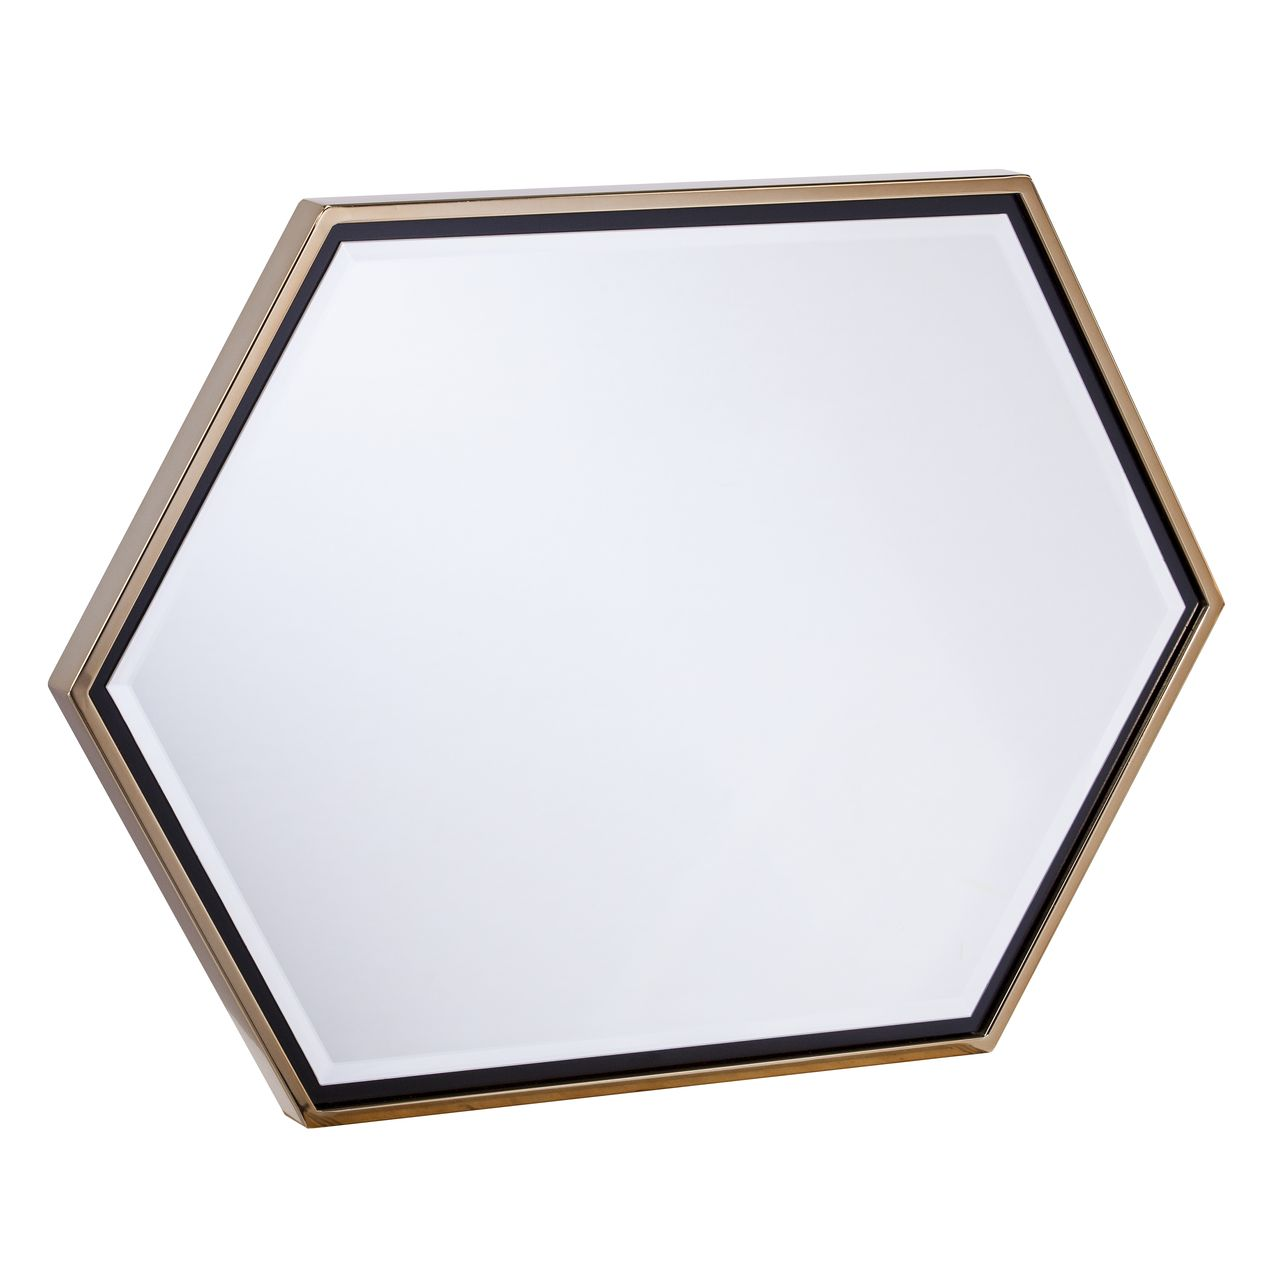 Holly & Martin Whexis Wall Mirror in Champagne Gold